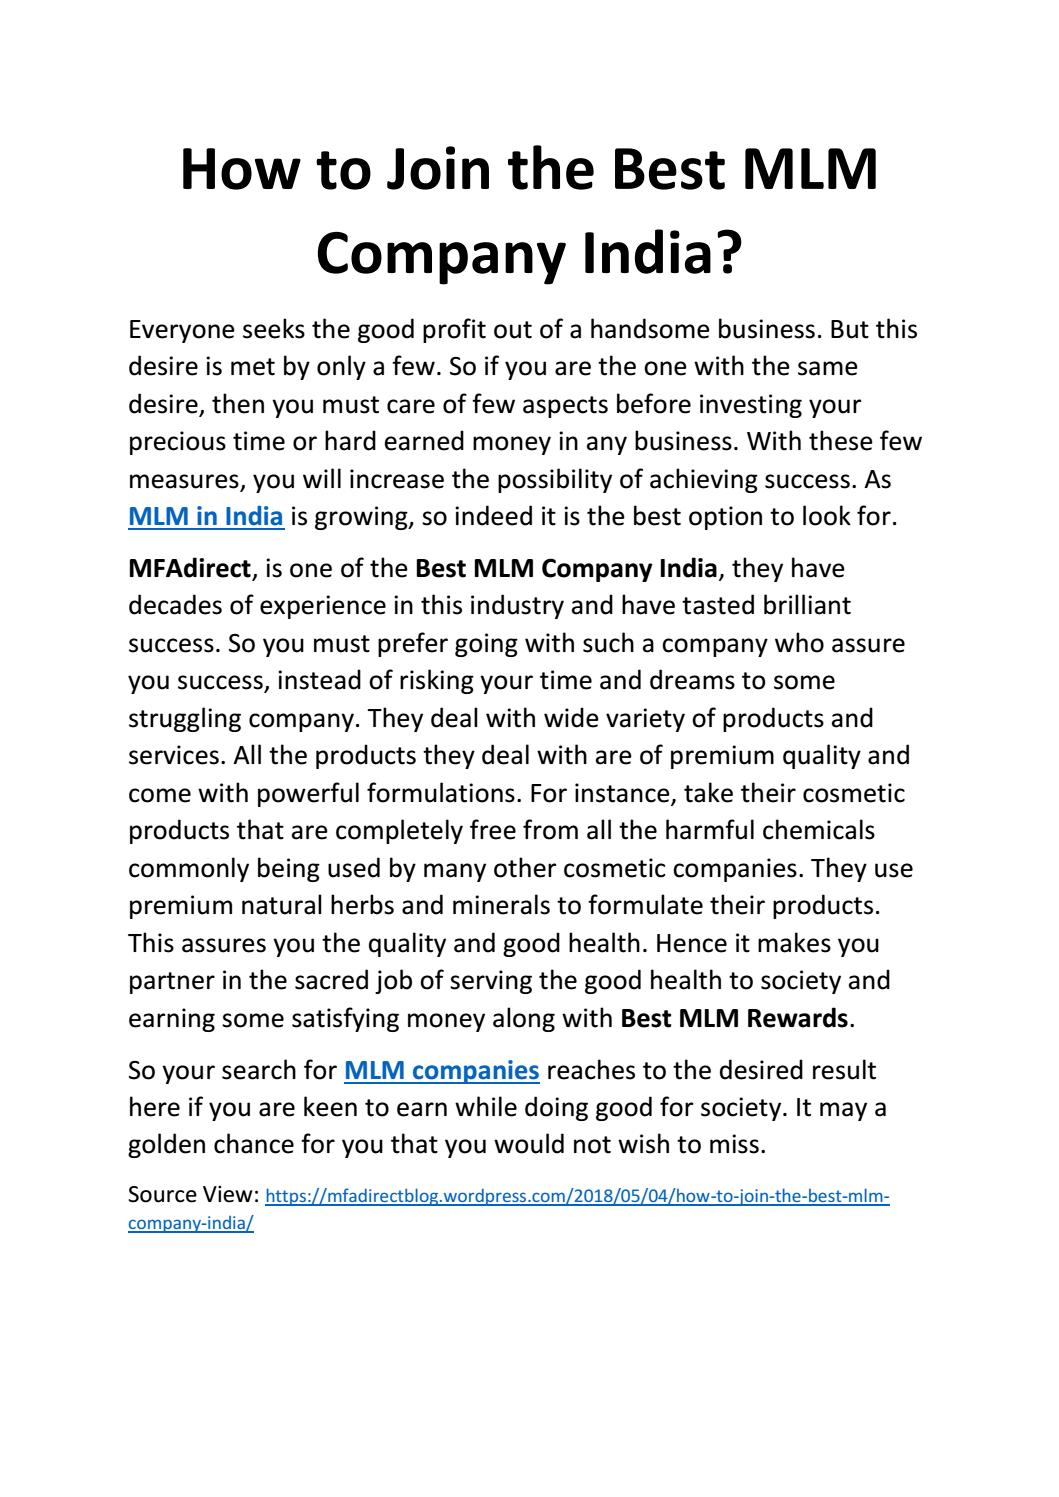 How to join the best mlm company india by directmfa - issuu